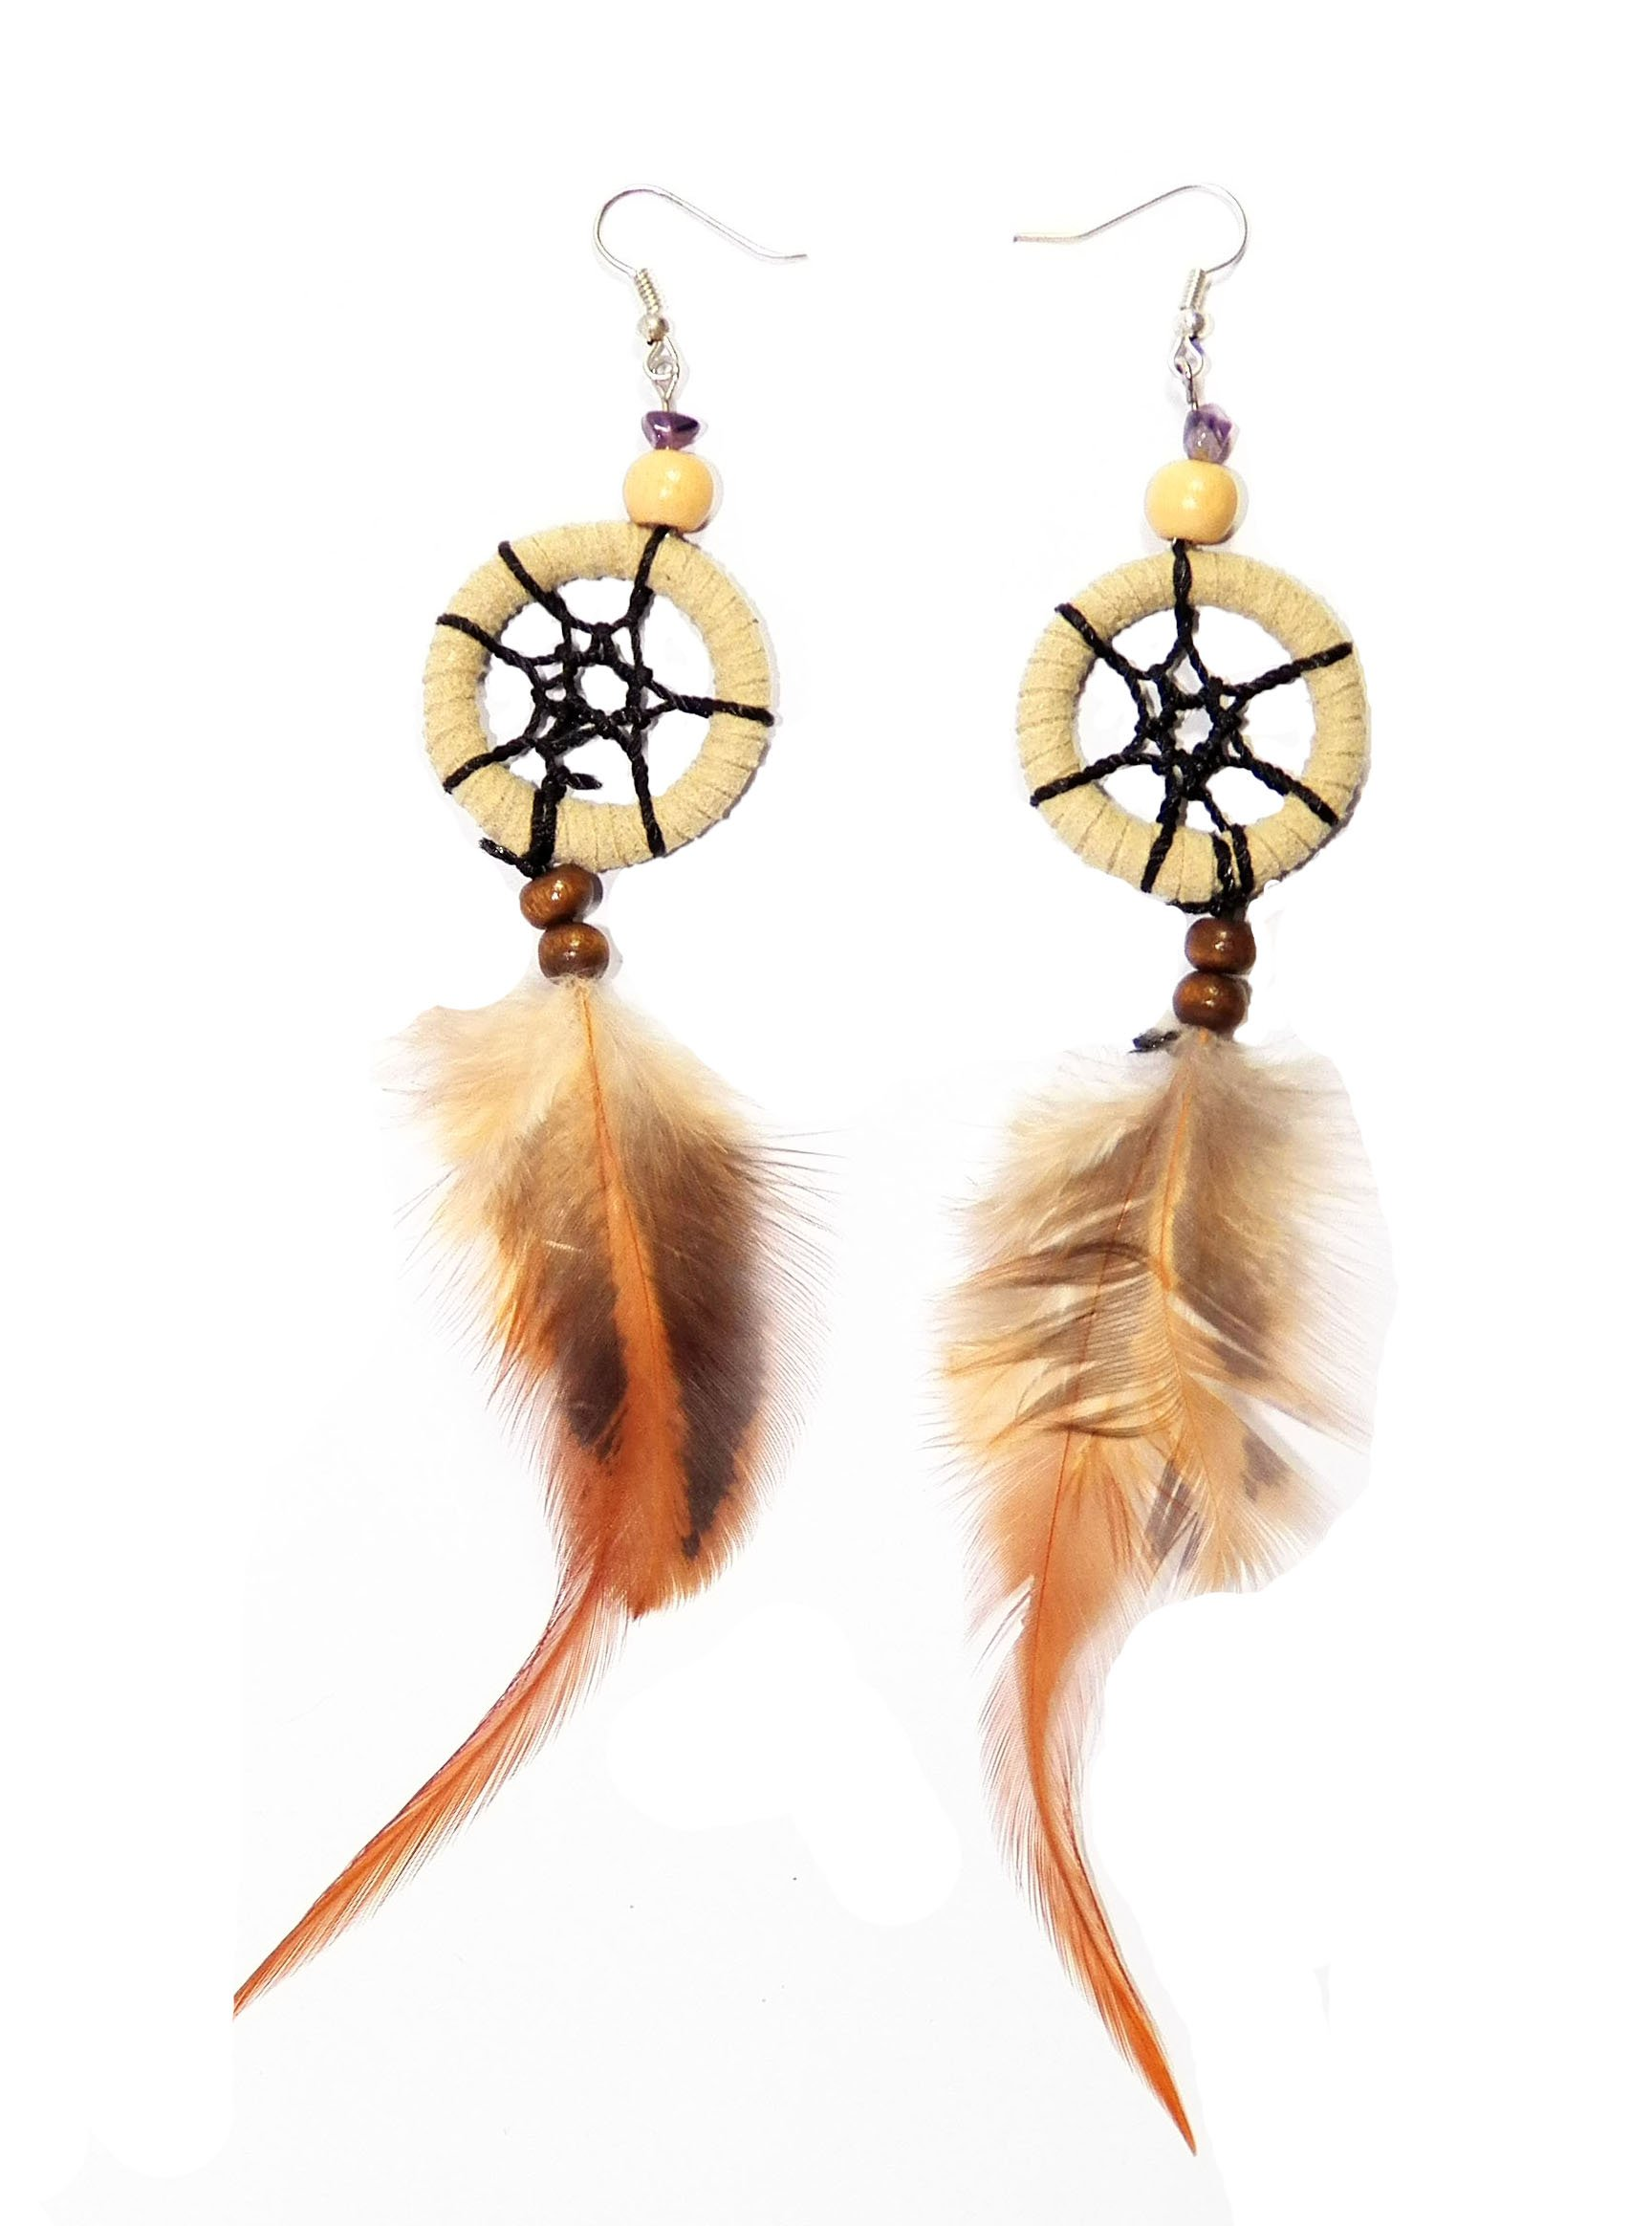 Dream Catcher Earrings Handmade Dangle Earrings Suede Leather Feather Natural (DCE10002) by PTN Dream Catcher (Image #1)